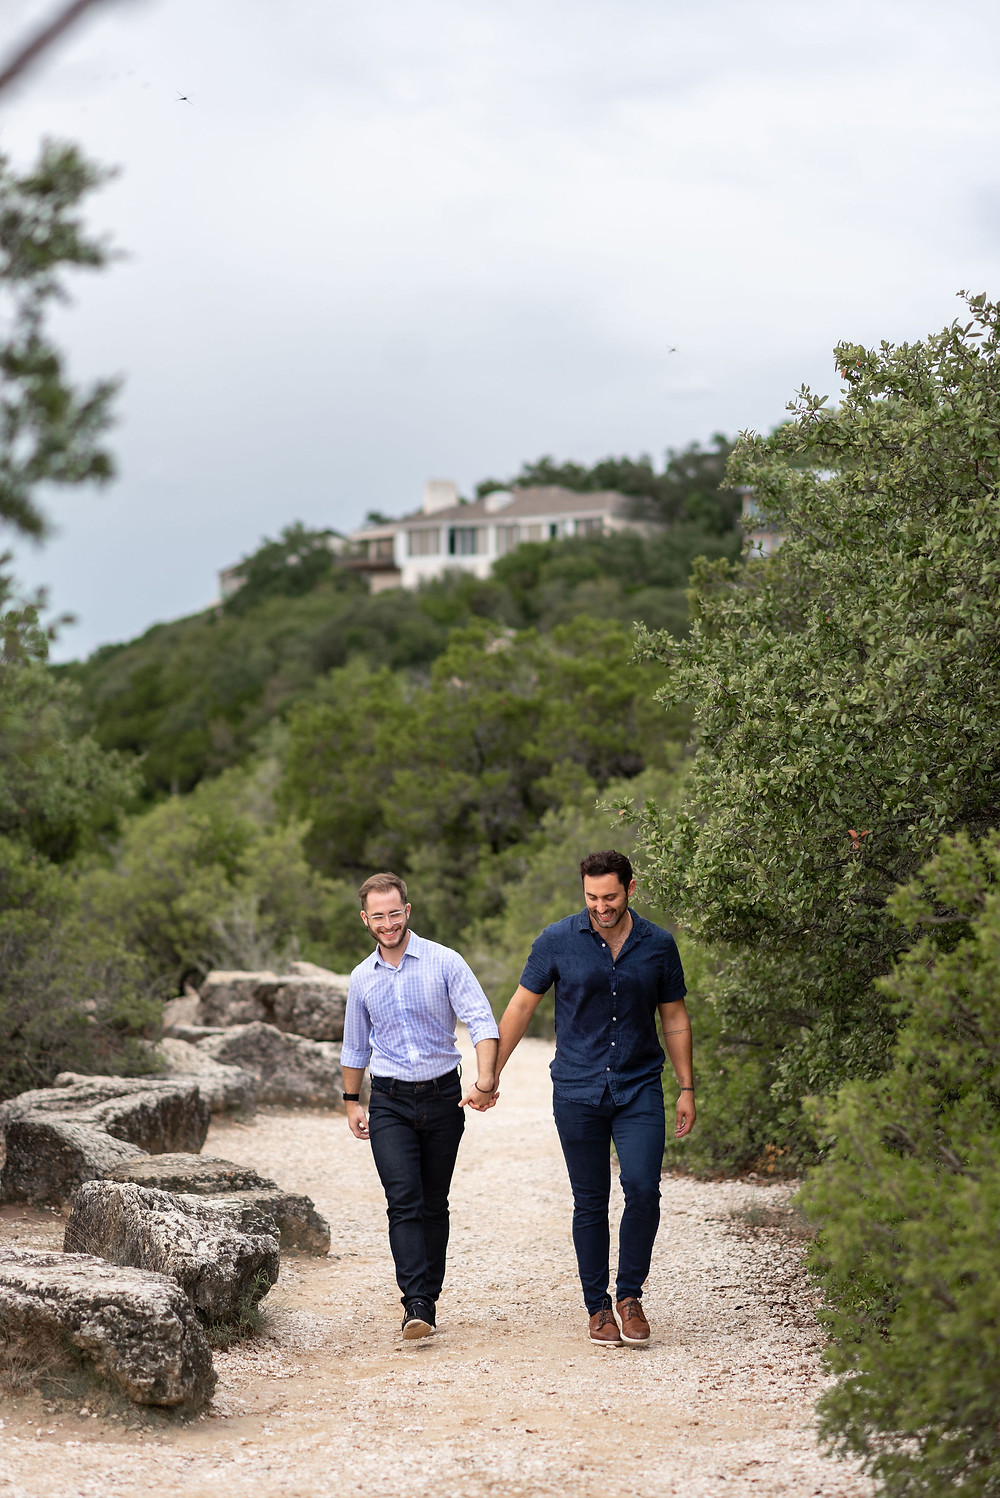 engagement photos at mount bonnell. couple walks along dirt path in between trees